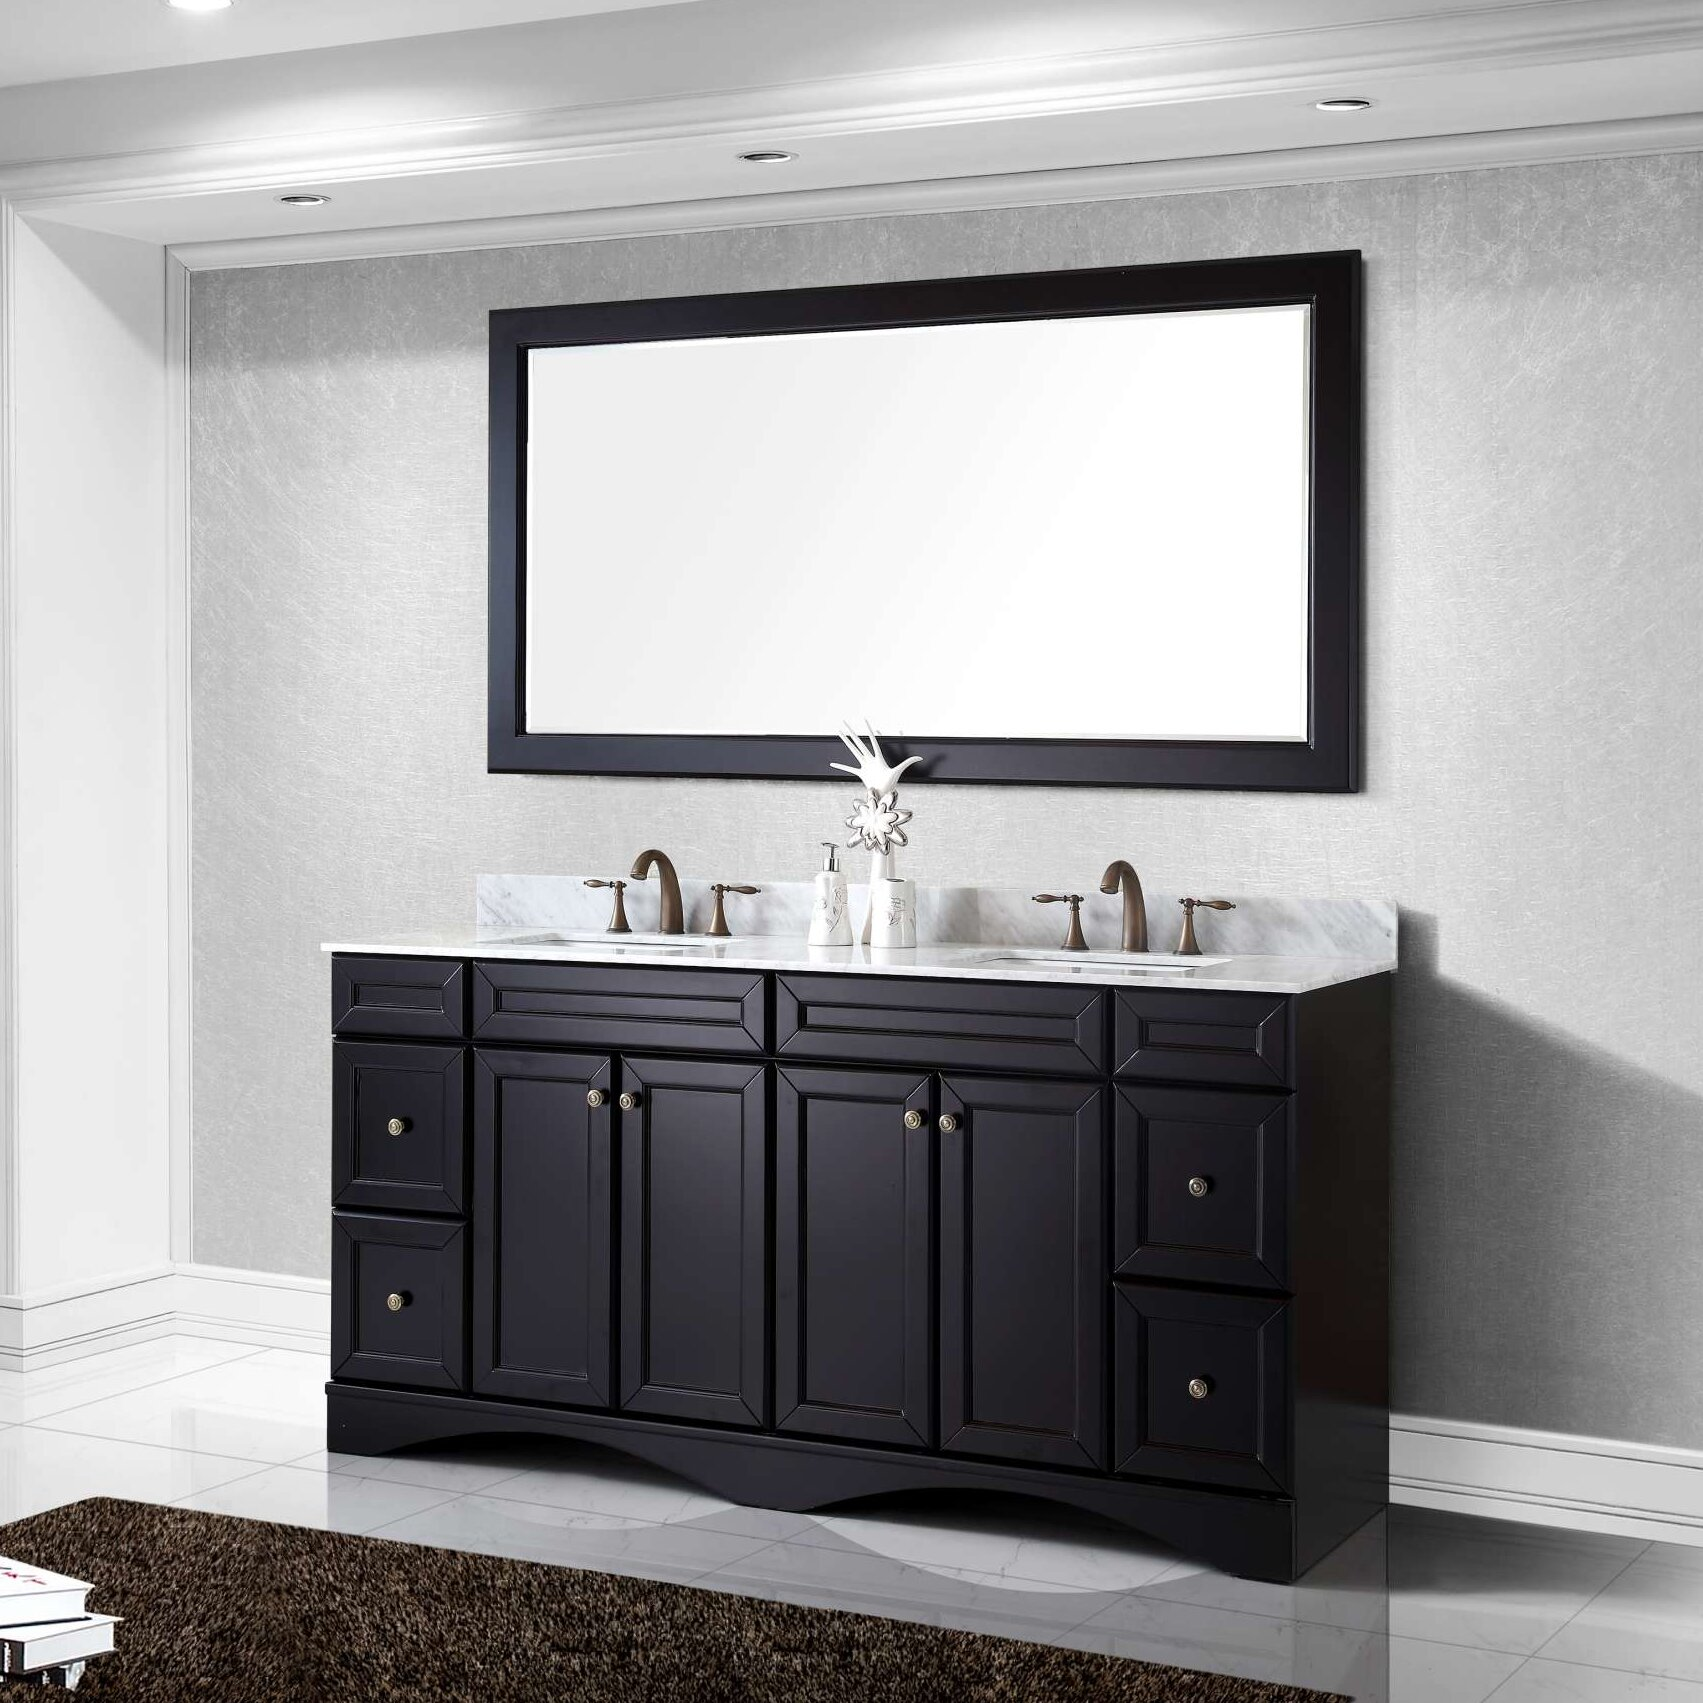 Double mirrored bathroom cabinet specials for las vegas for Bathroom cabinets las vegas